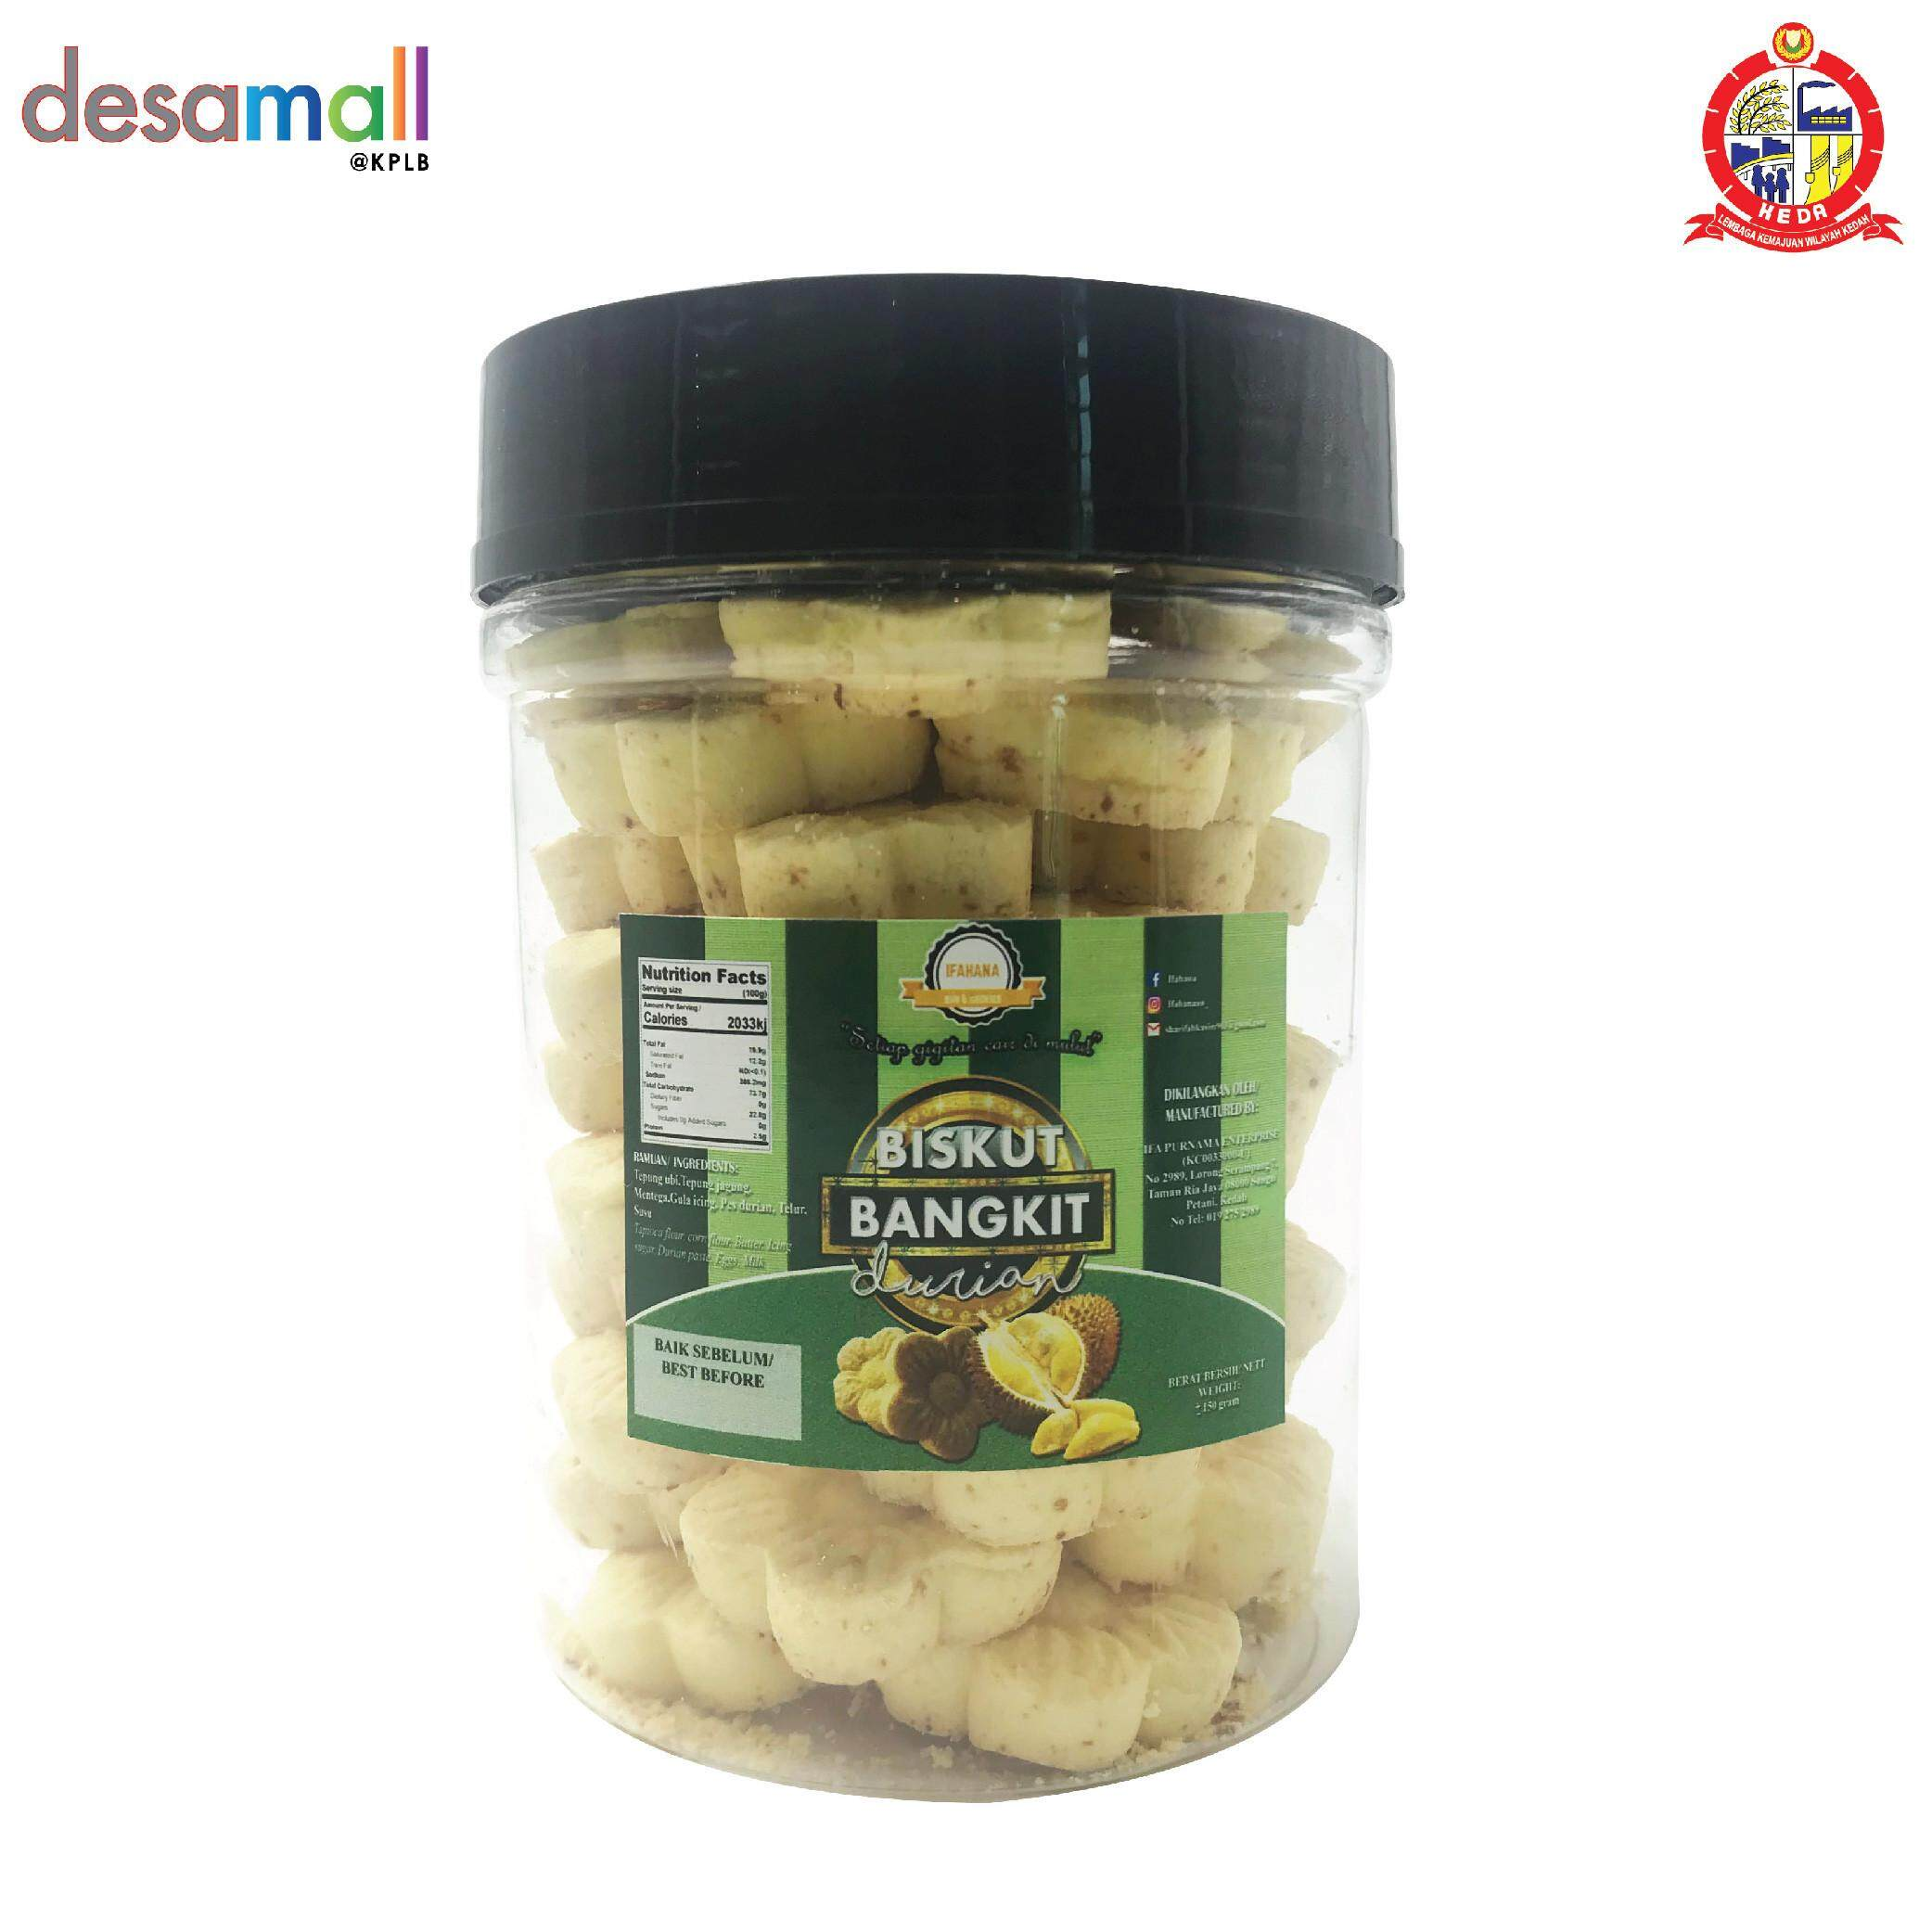 IFAHANA Bangkit Cheese Durian in Cylinder Container (48Pcs)